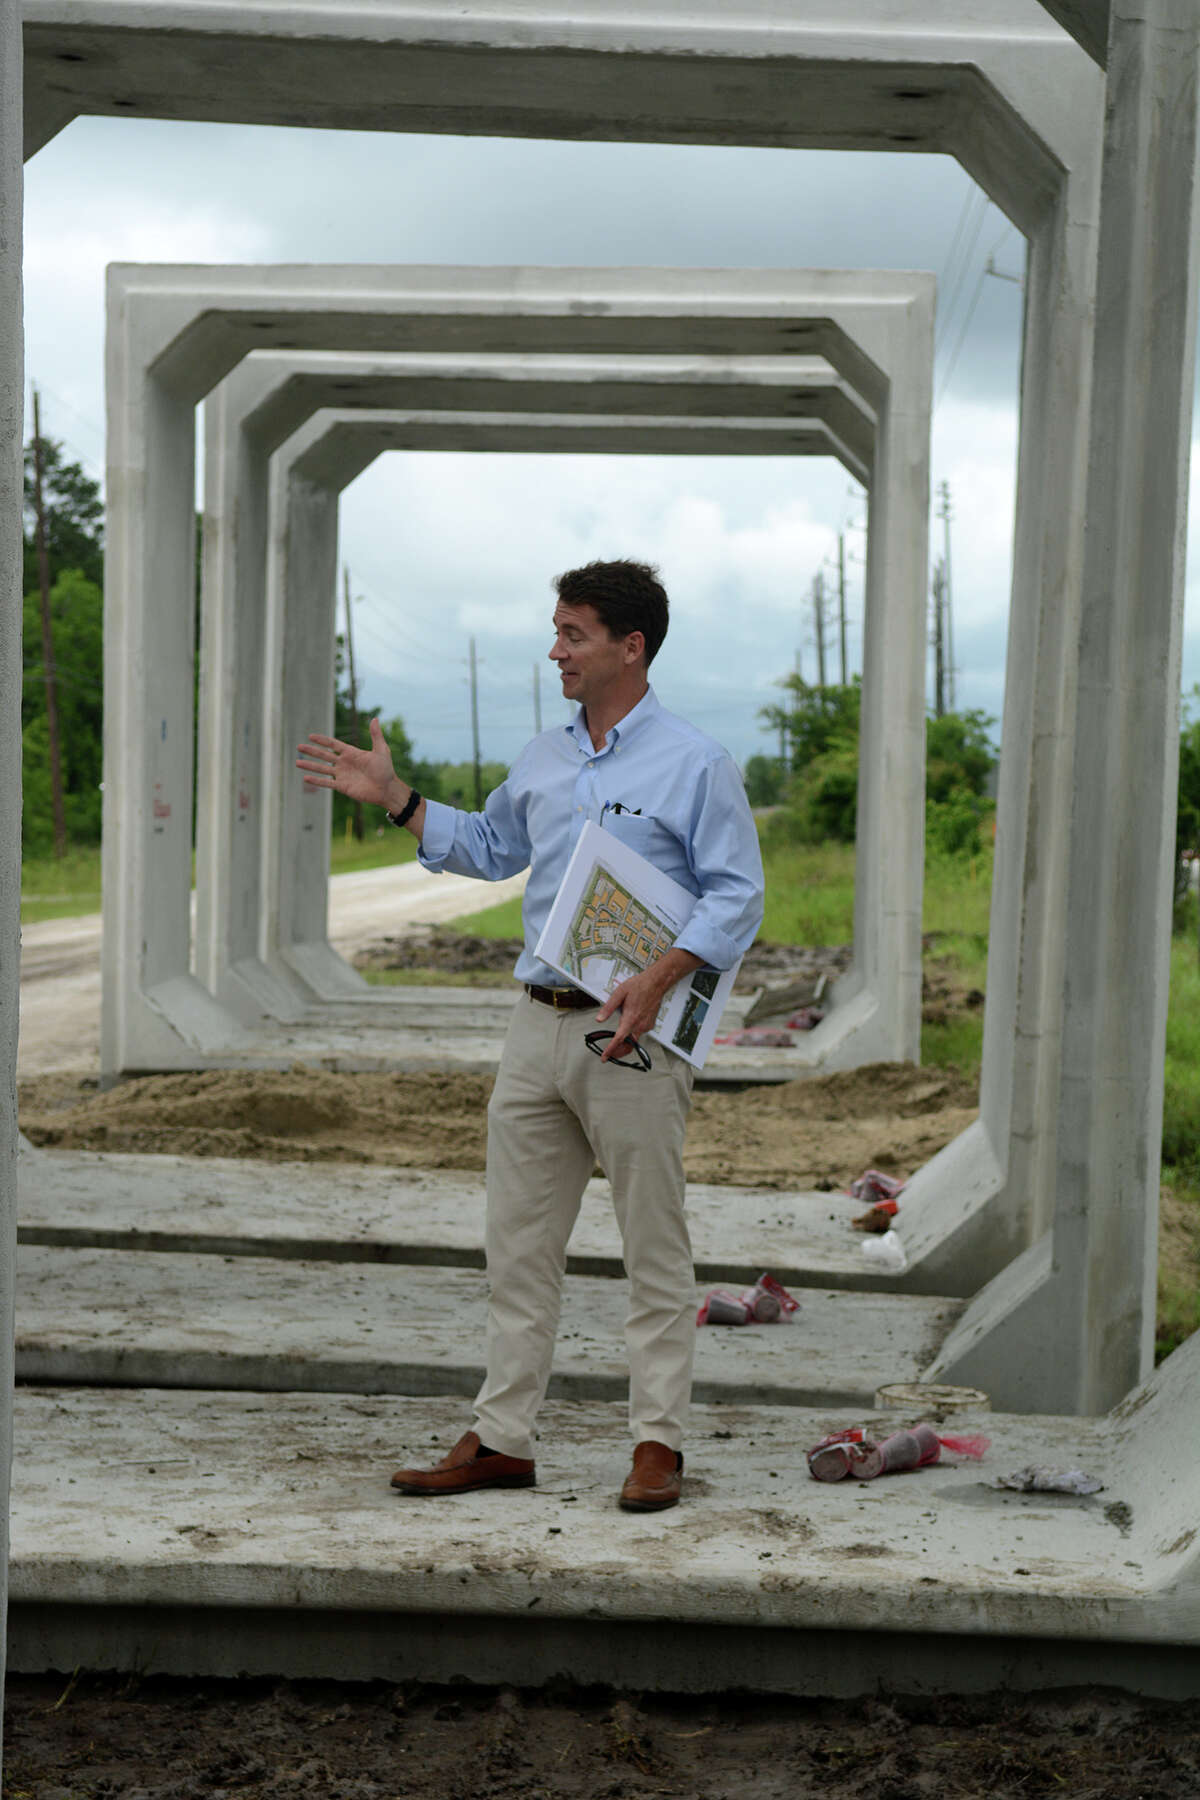 Ryan McCord, President of McCord Development, Inc., standing inside a box culvert to be buried and used for drainage, talks about the development of Generation Park during a tour of the 4,000-acre mixed-use project in northeast Houston on Thursday, May 21, 2015. (Photo by Jerry Baker/Freelance)